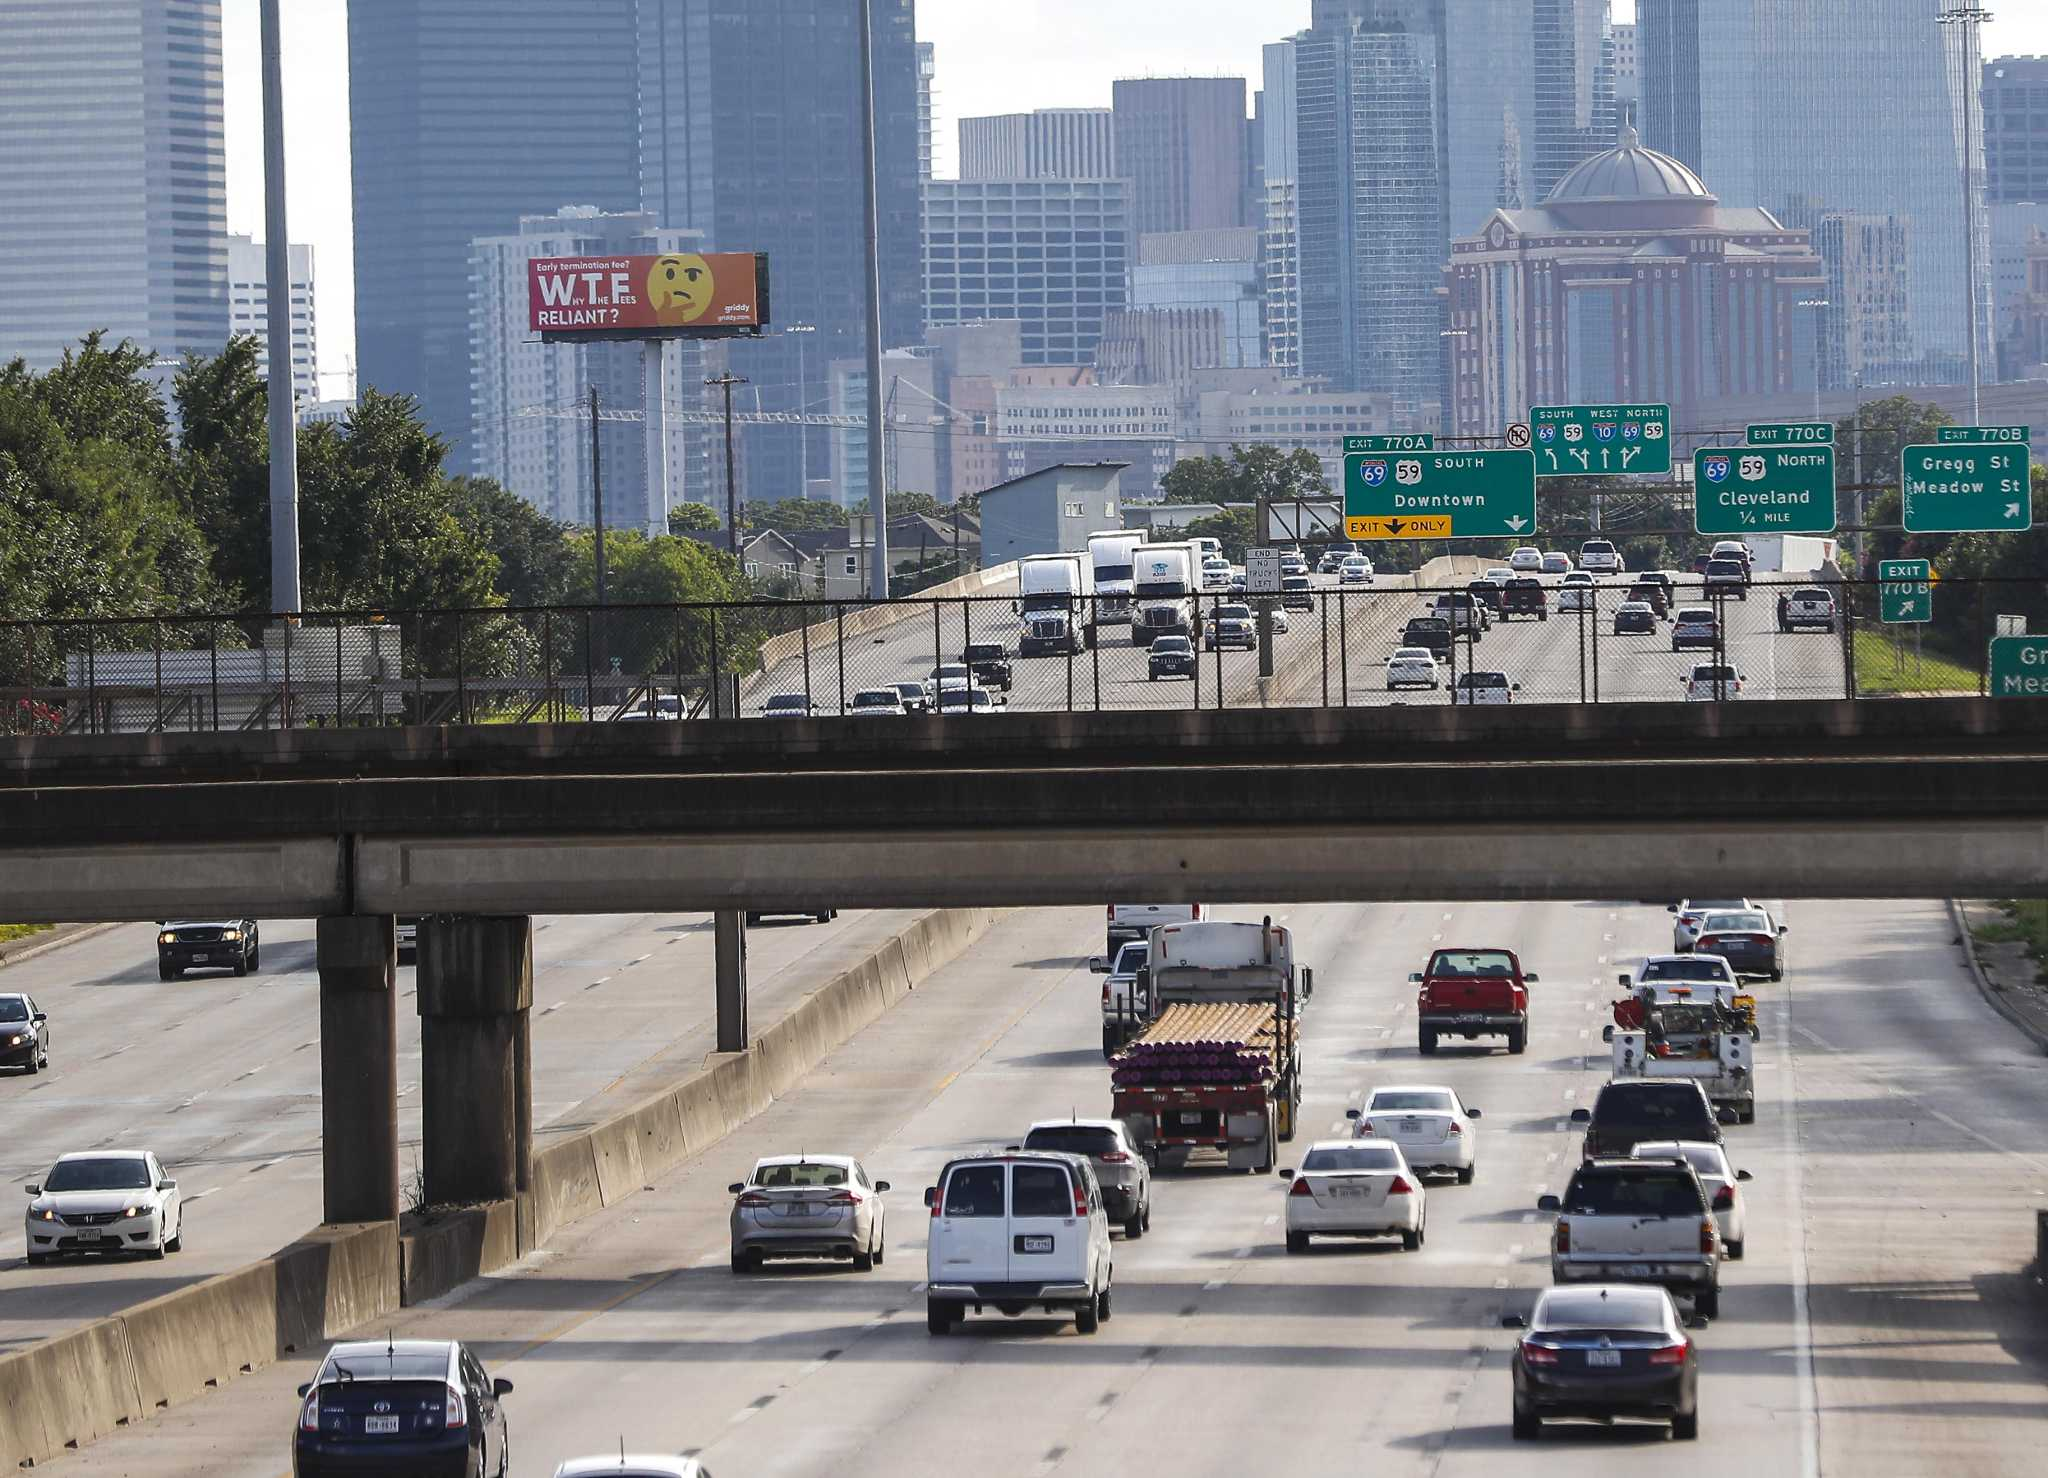 Griddy came to Texas to disrupt the power market, but can it survive being shaken?